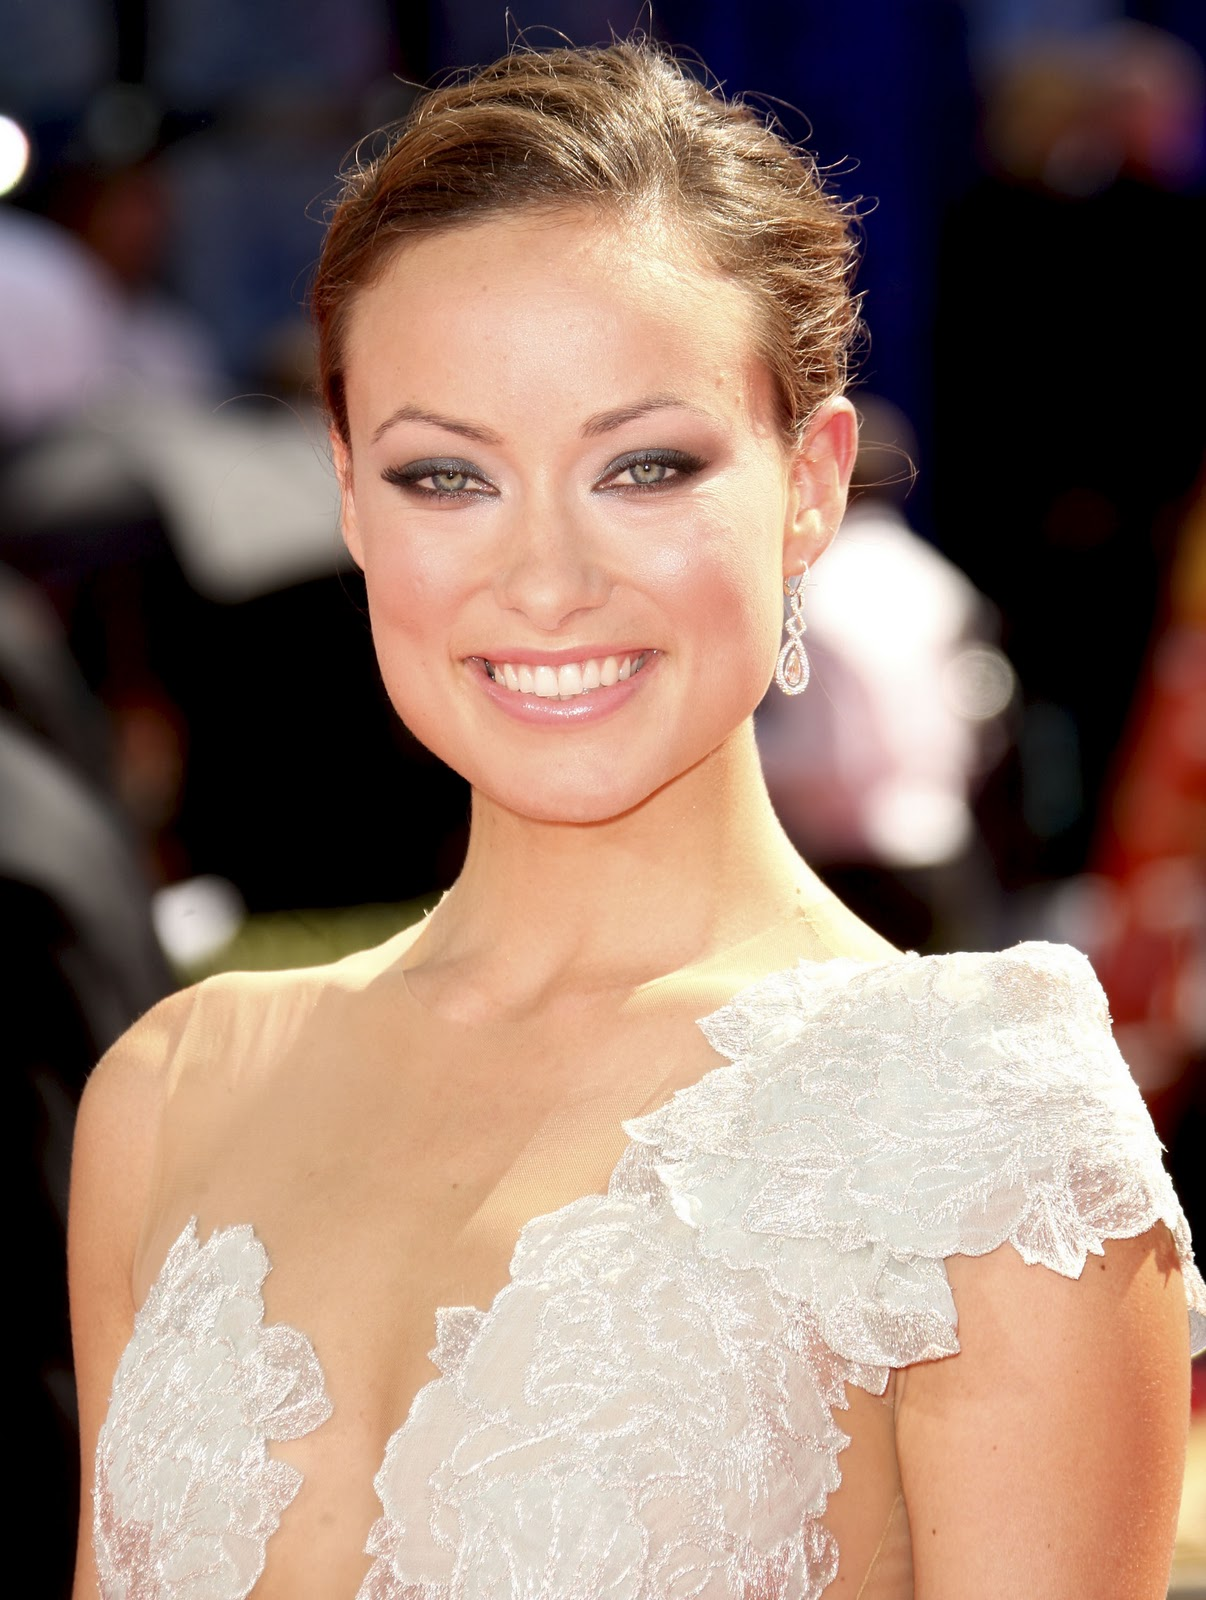 http://1.bp.blogspot.com/-fEKwujsHhTY/TrO8YcpjixI/AAAAAAAABZg/ugyCQdRJXs8/s1600/Olivia-on-the-Red-Carpet-the-2009-Emmy-Awards-olivia-wilde-8247712-1929-2560.jpg